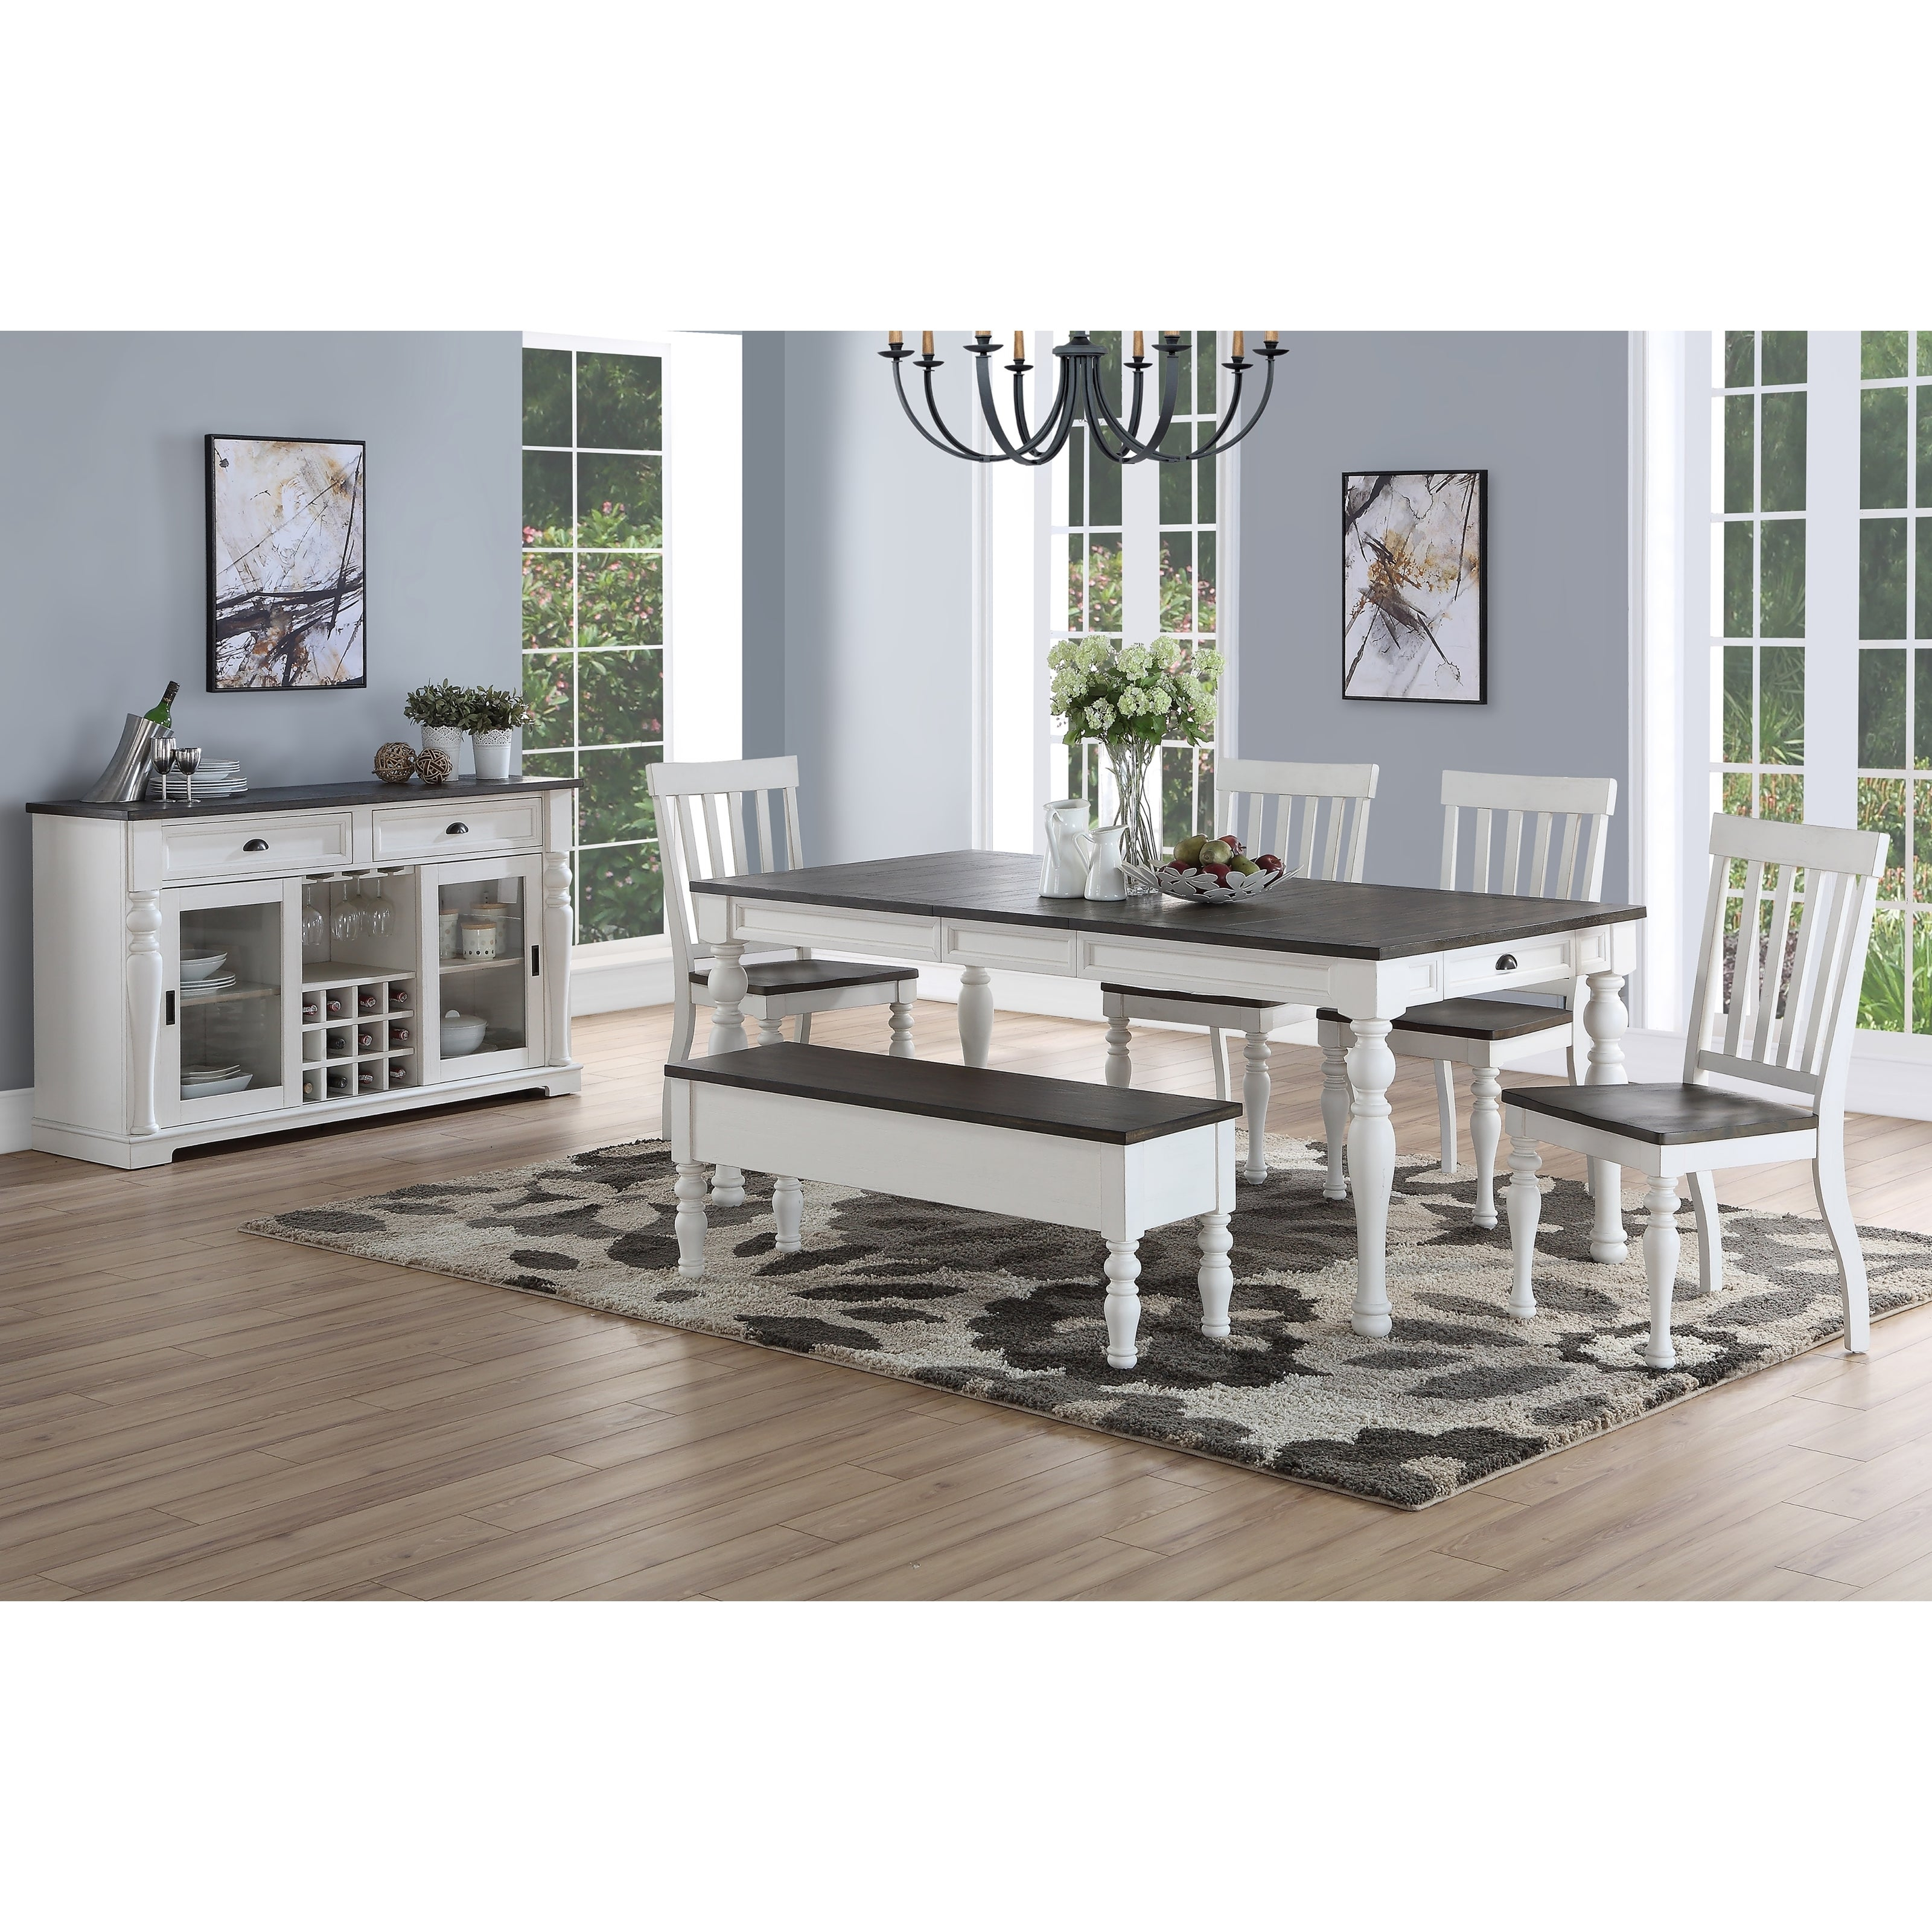 Our With Regard To Favorite Falmer 3 Piece Solid Wood Dining Sets (View 16 of 20)